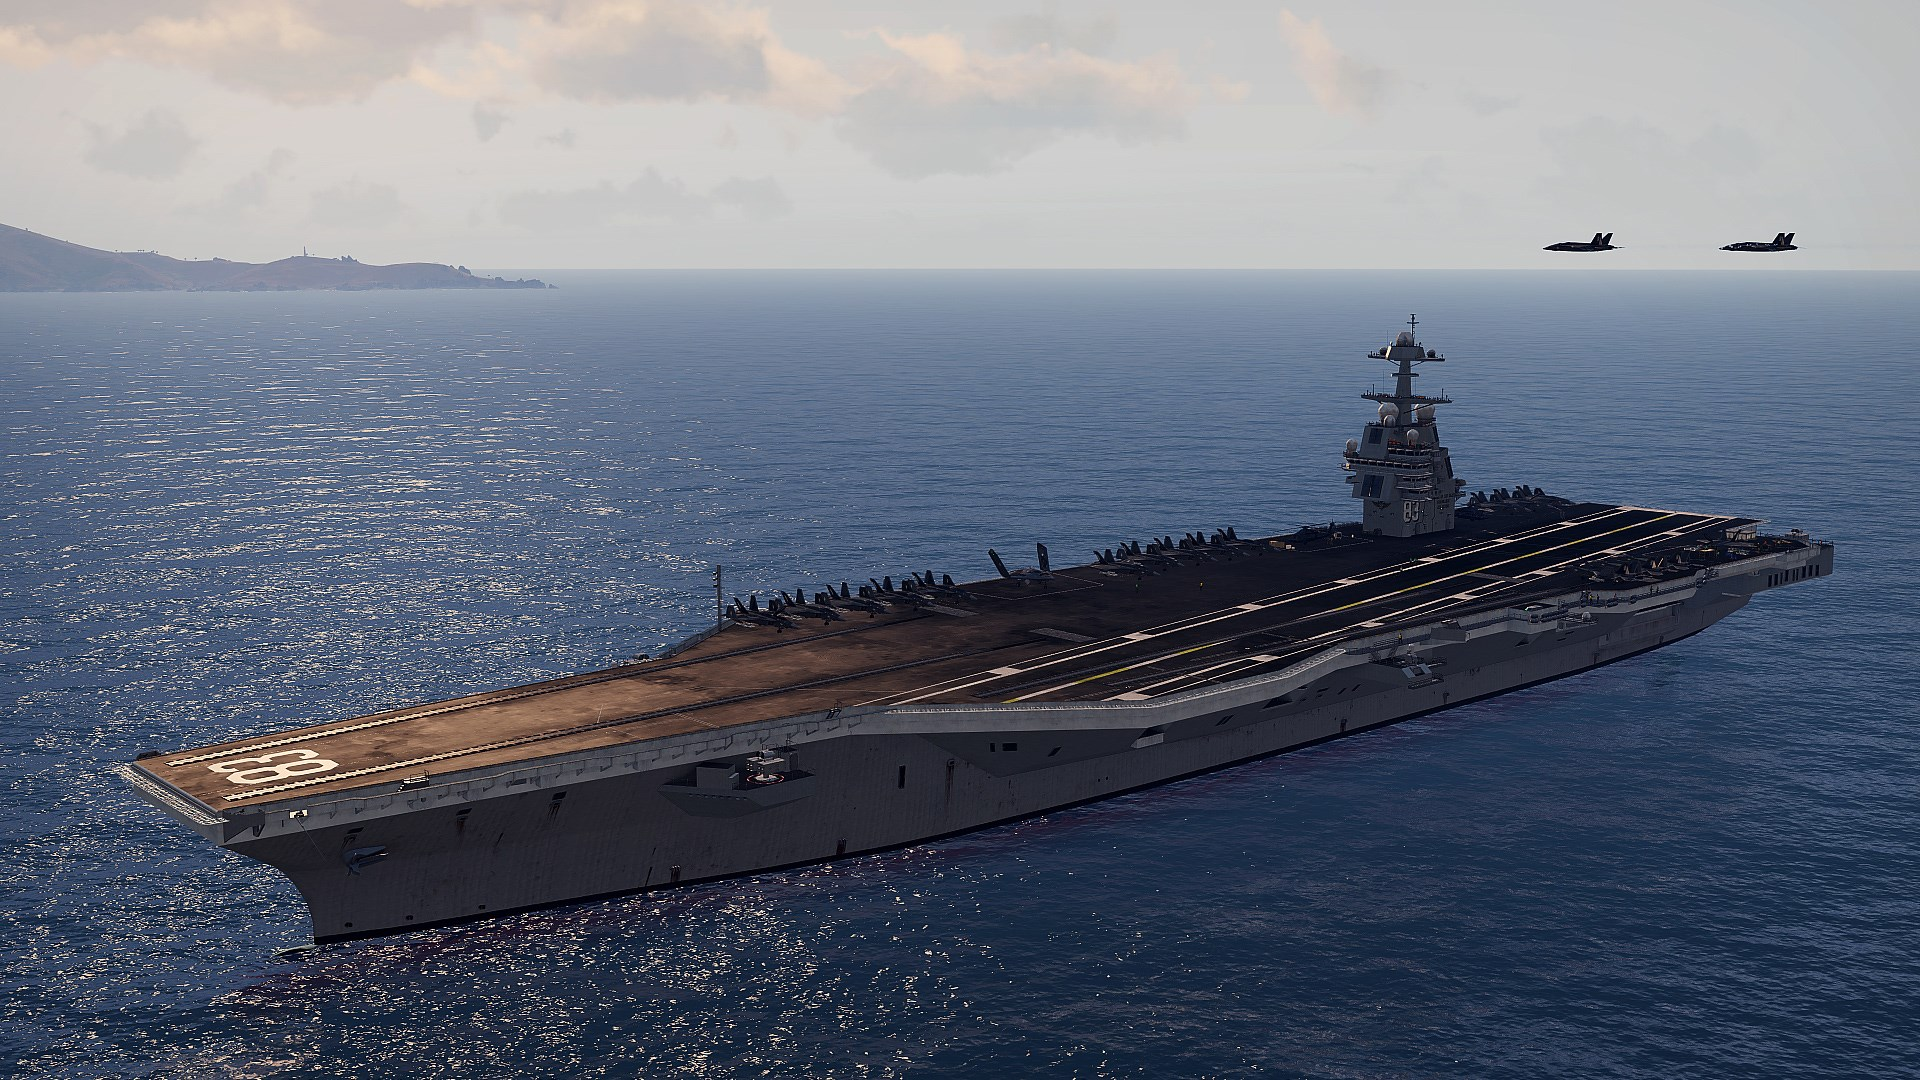 Arma 3 is getting new aircraft, and an enormous carrier to